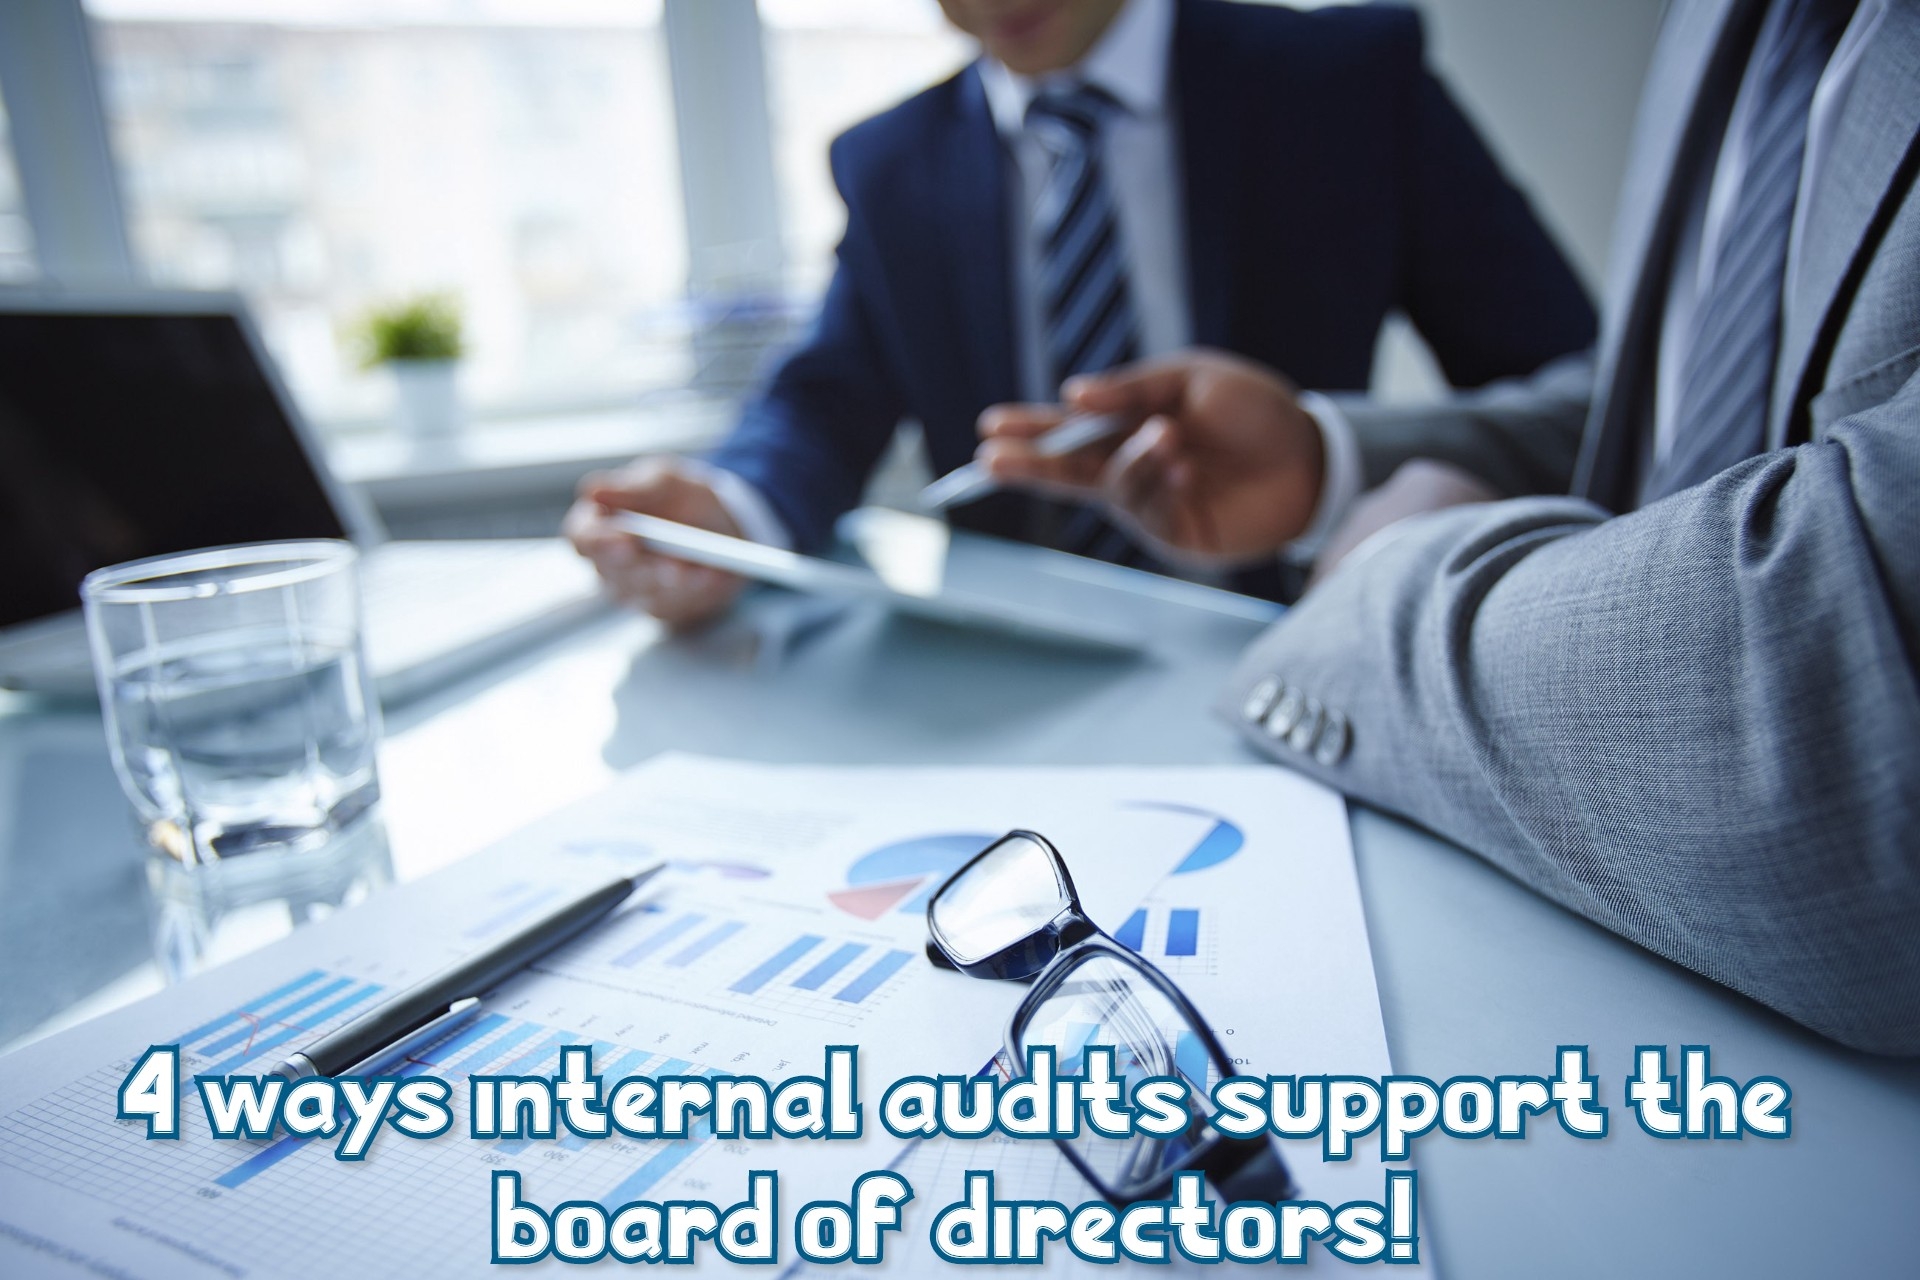 Four ways internal audits support the board of directors!